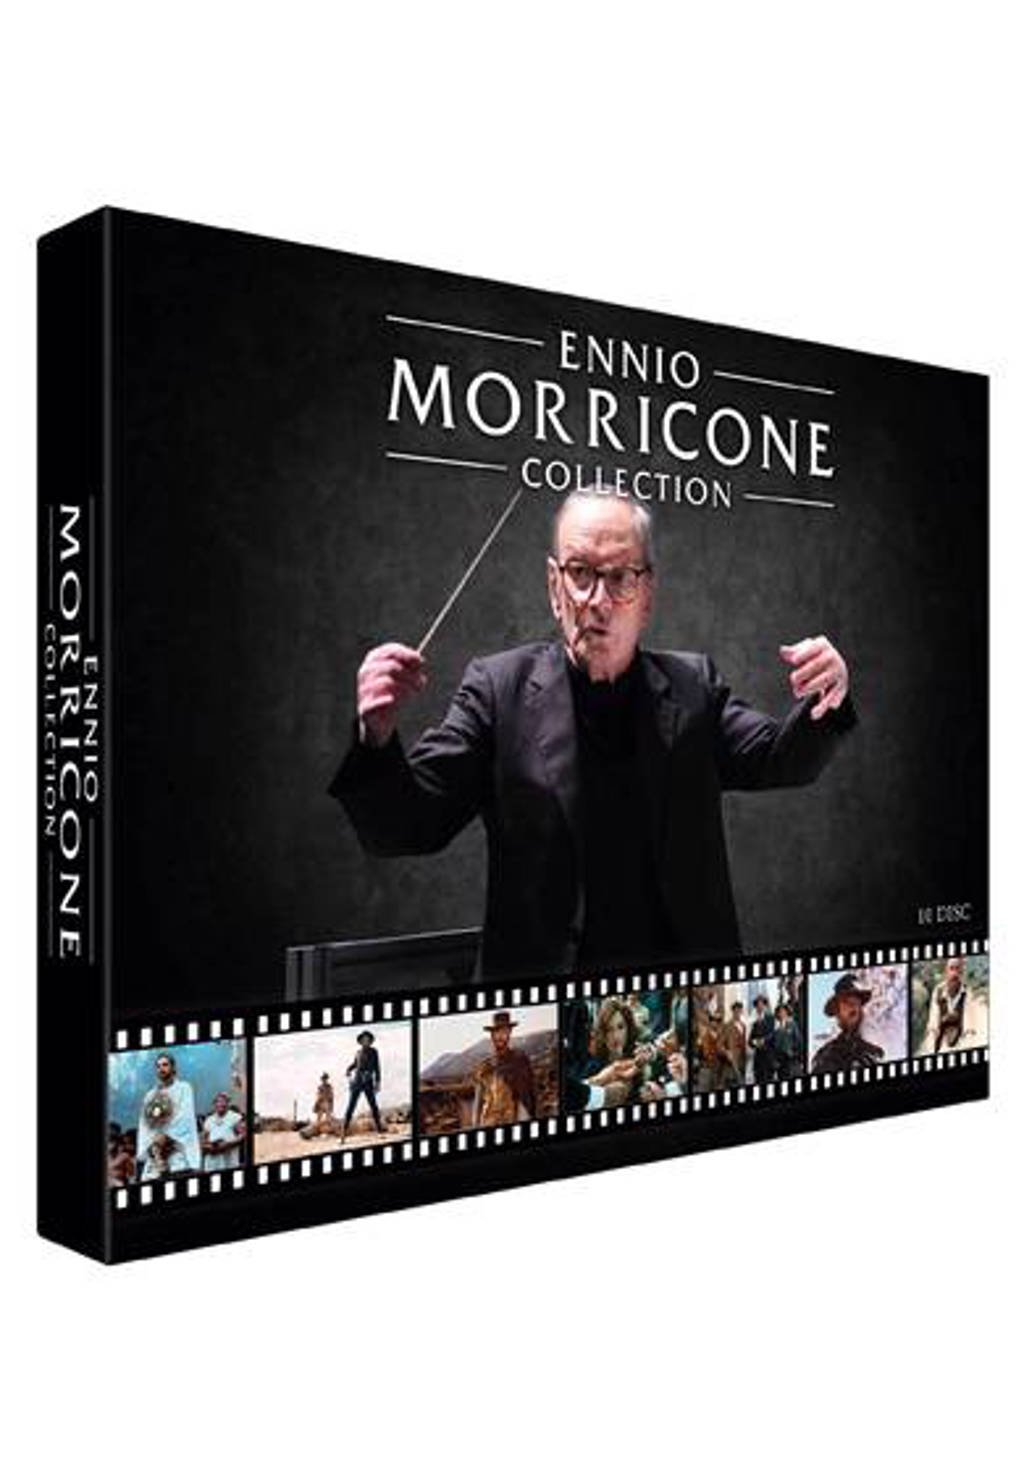 Ennio Morricone collection (DVD)